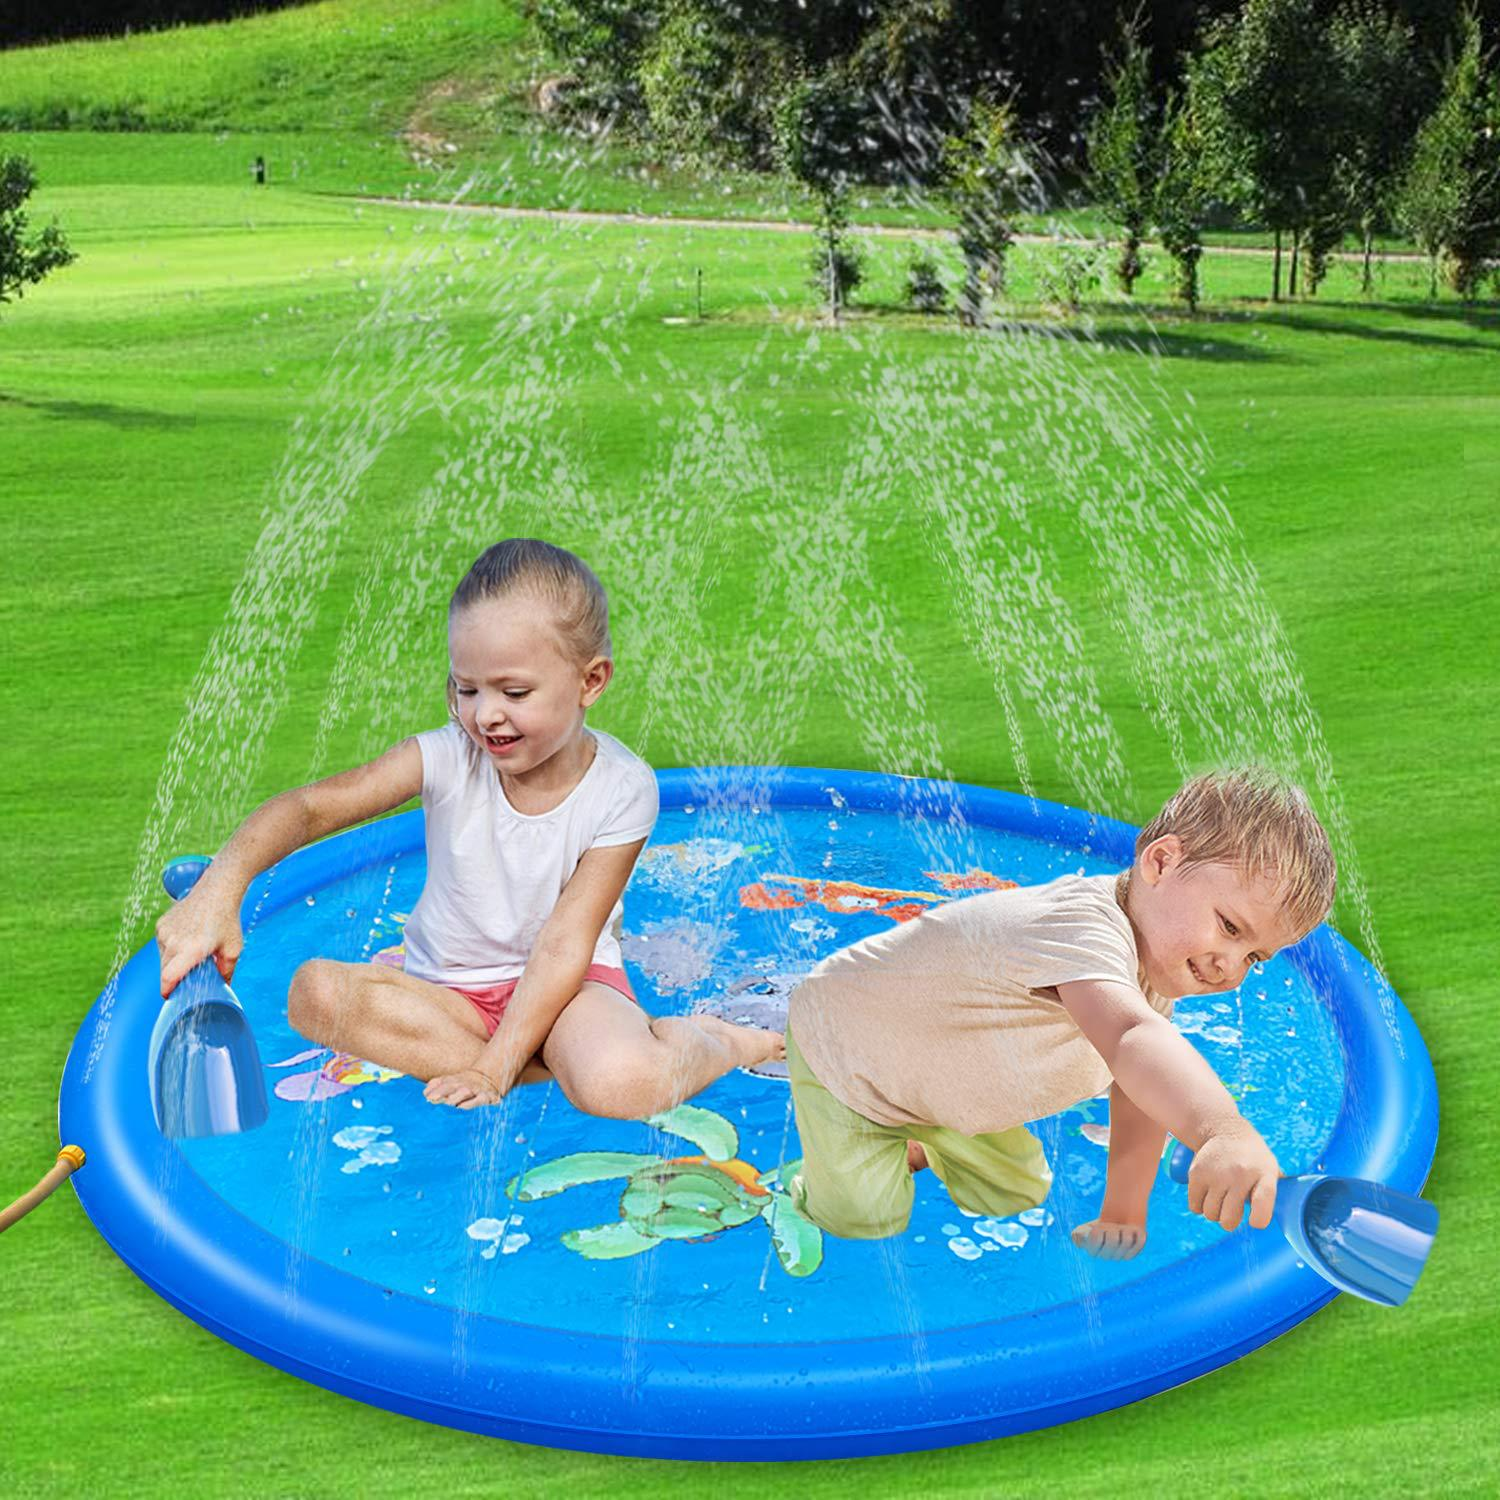 2019 Eco-friendly Sprinkle and Splash Play Mat spray water mat for kids play outdoor splash pad